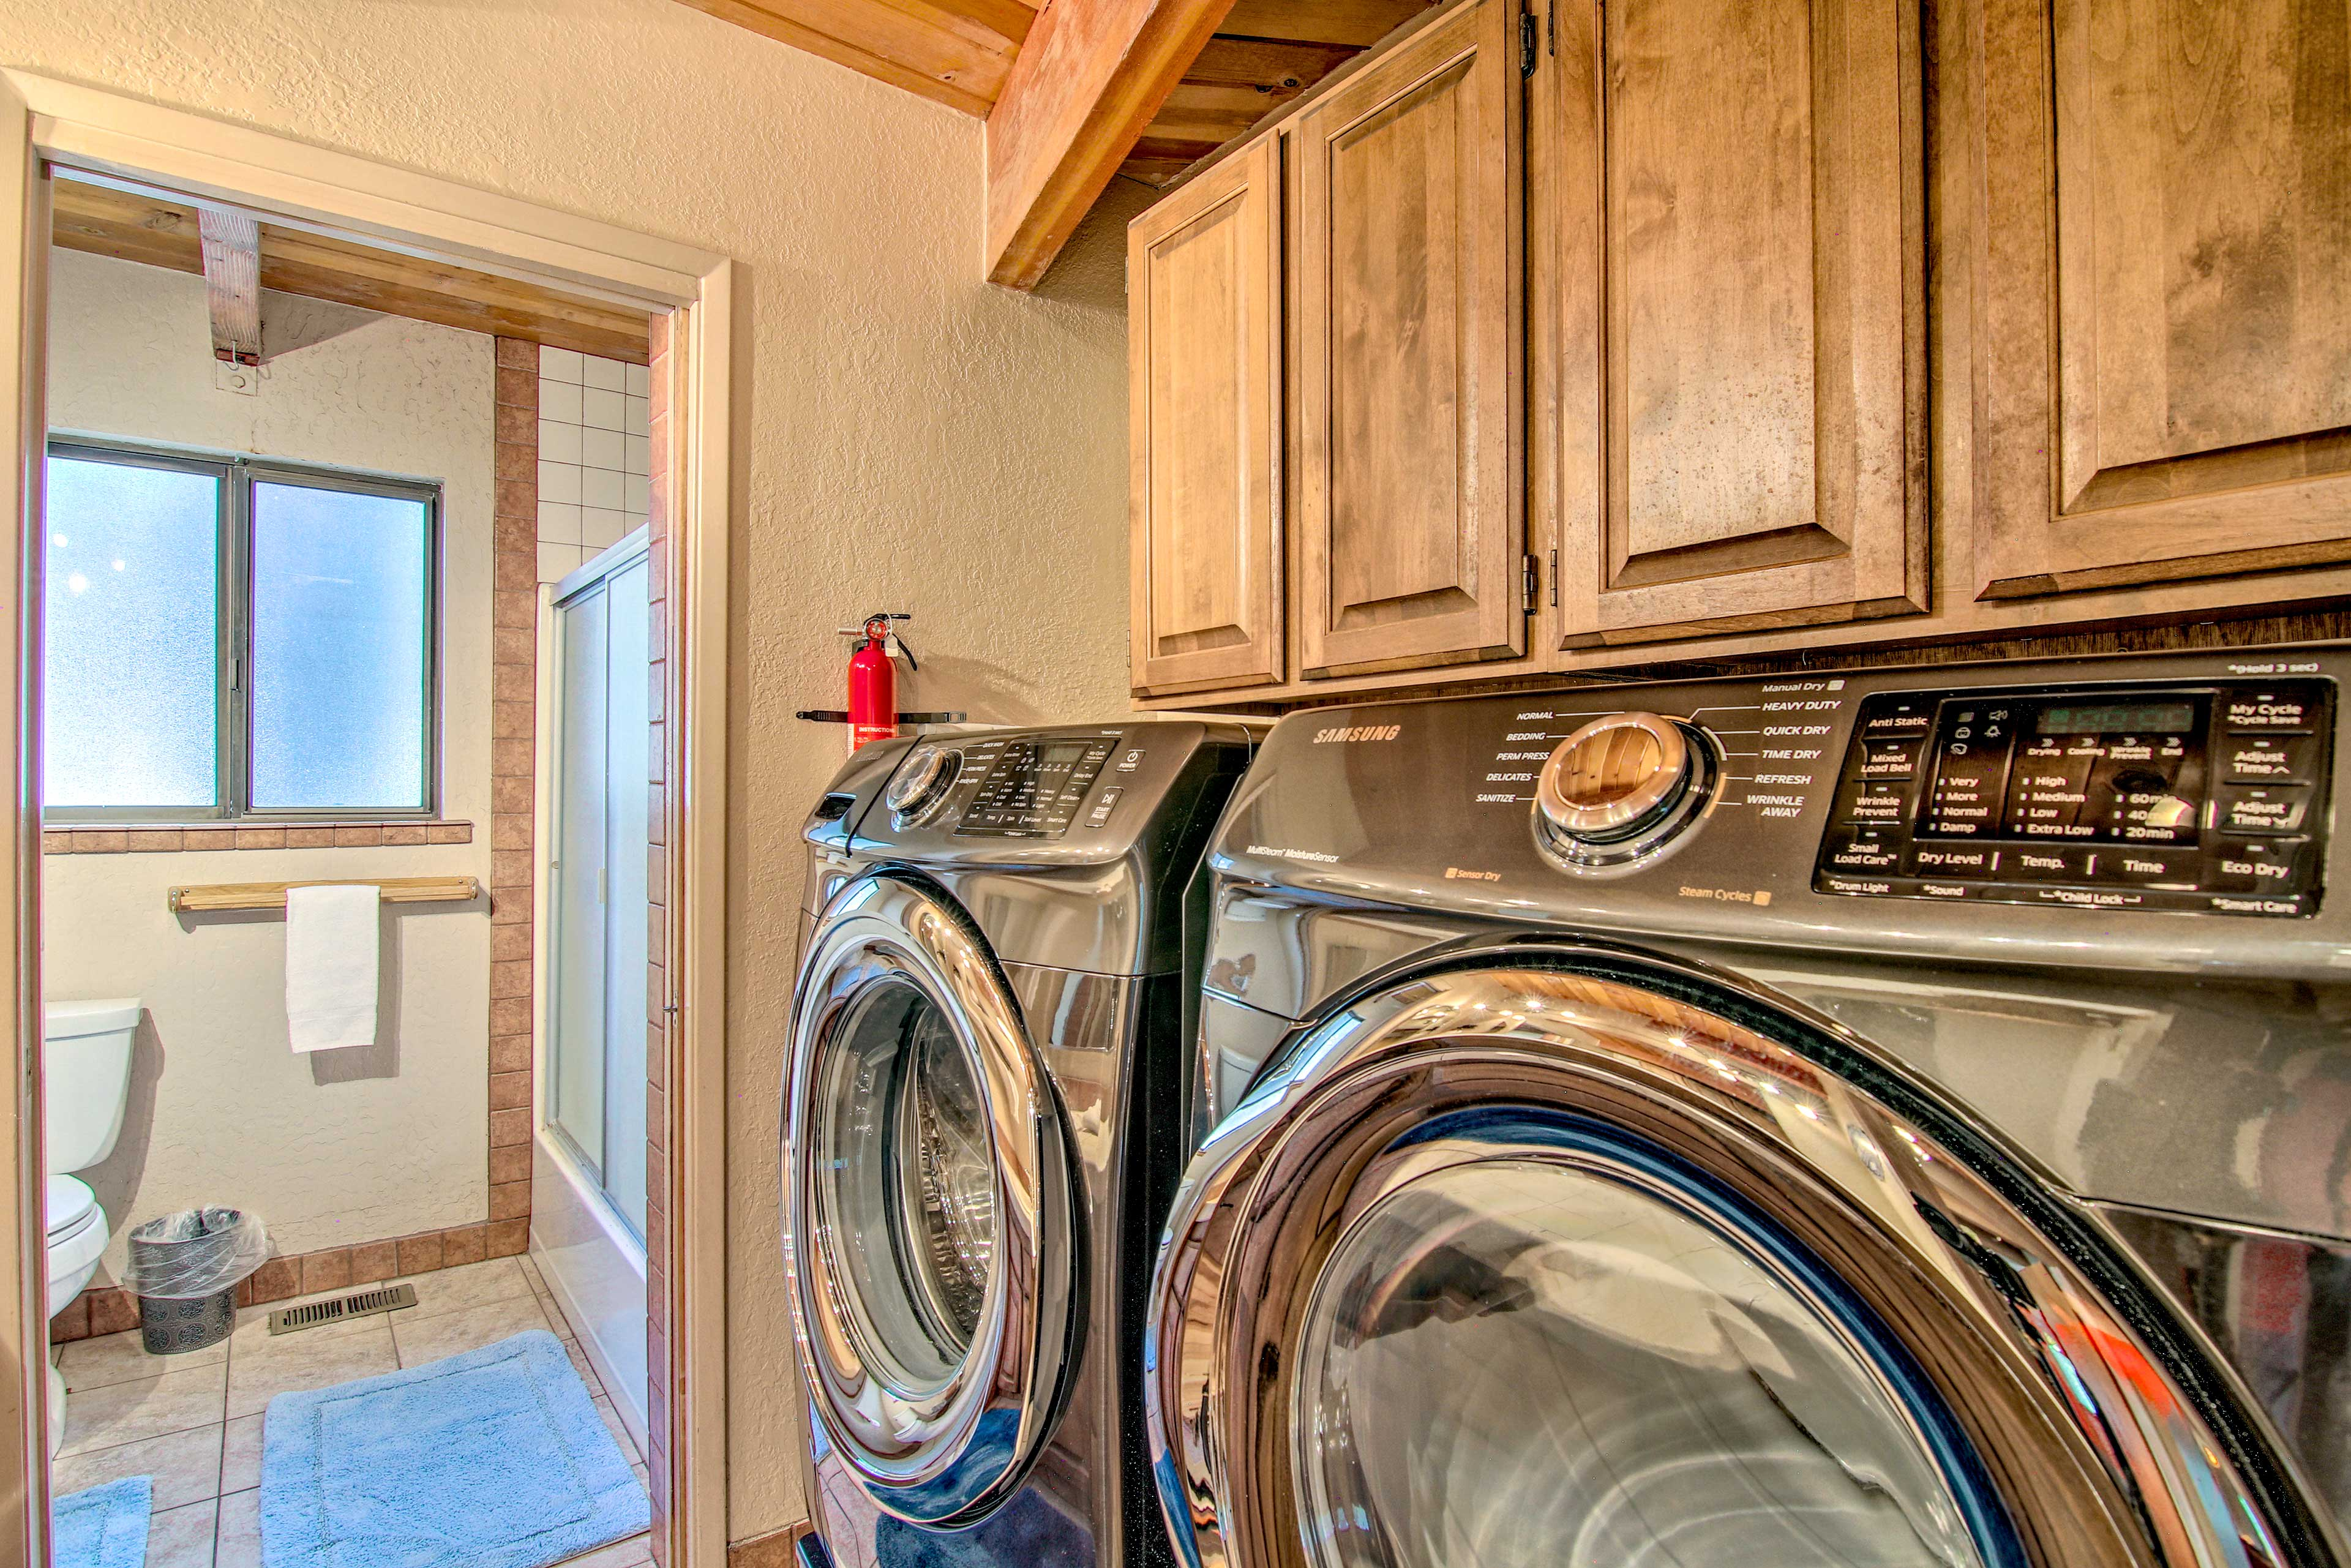 Keep clothes smelling fresh with the in-unit washer and dryer.